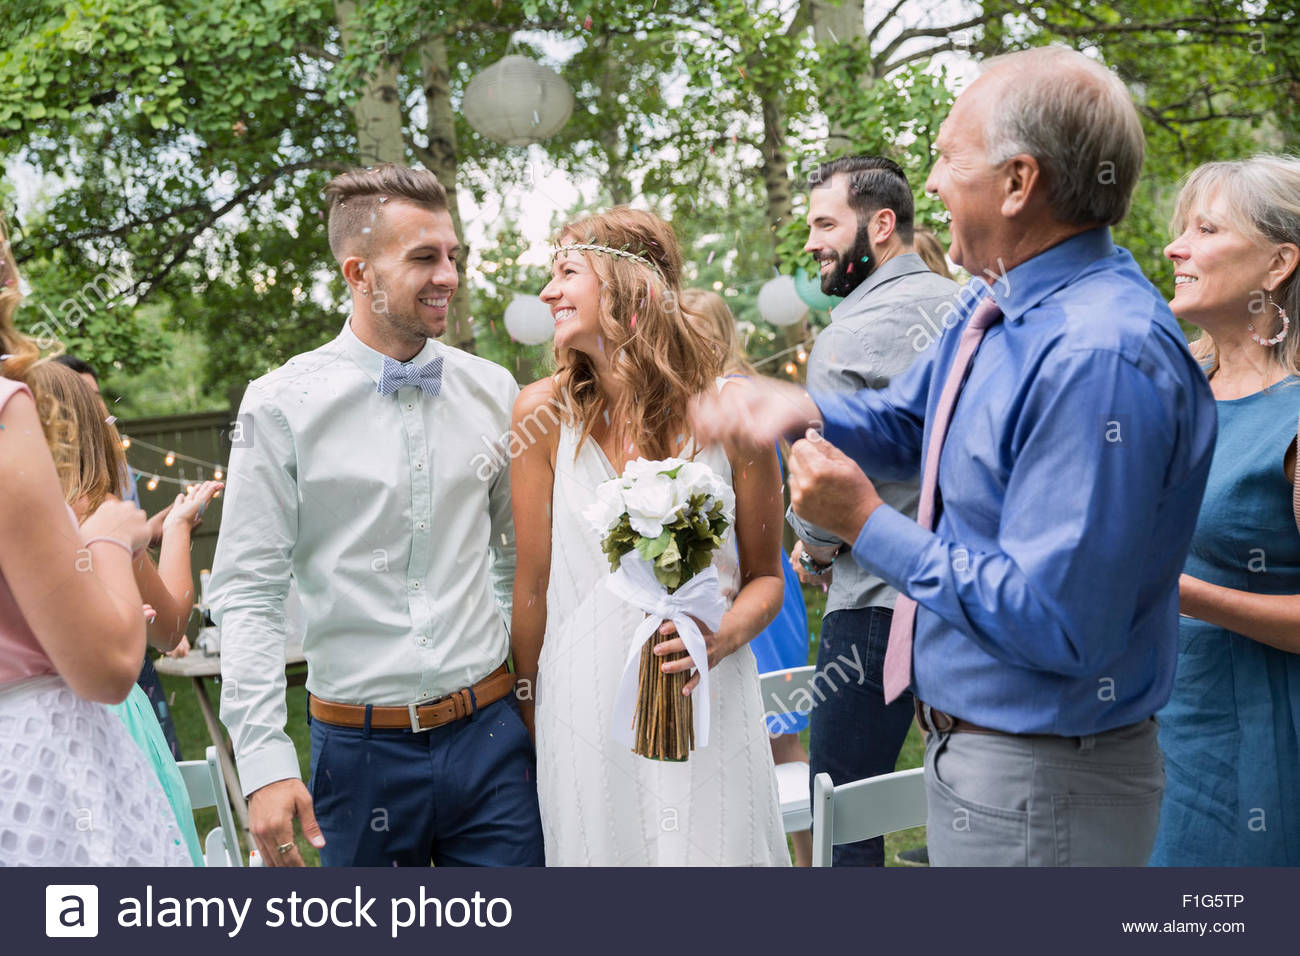 Guests clapping for bride and groom backyard wedding Stock Photo